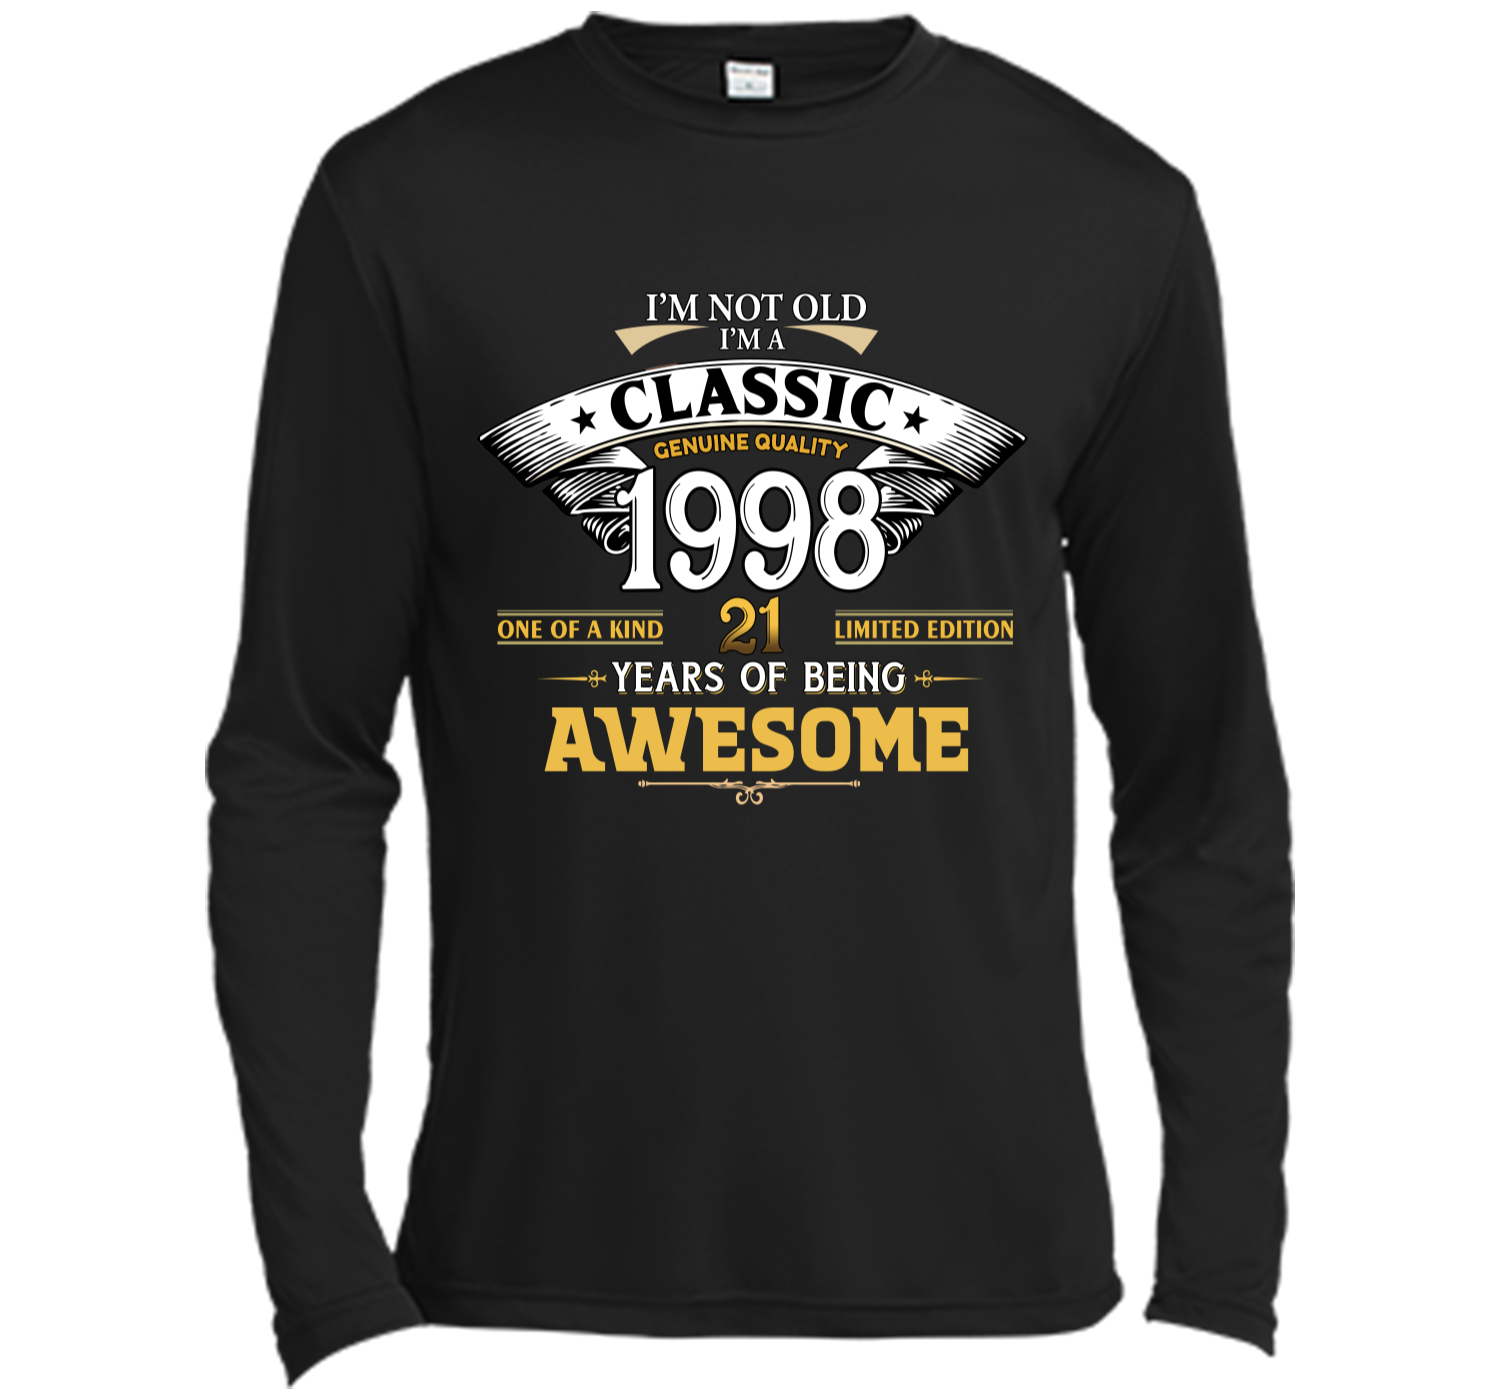 Classic Funny 1998 21st Birthday T Shirts Years Of Awesome Long Sleeve Moisture Absorbing Shirt